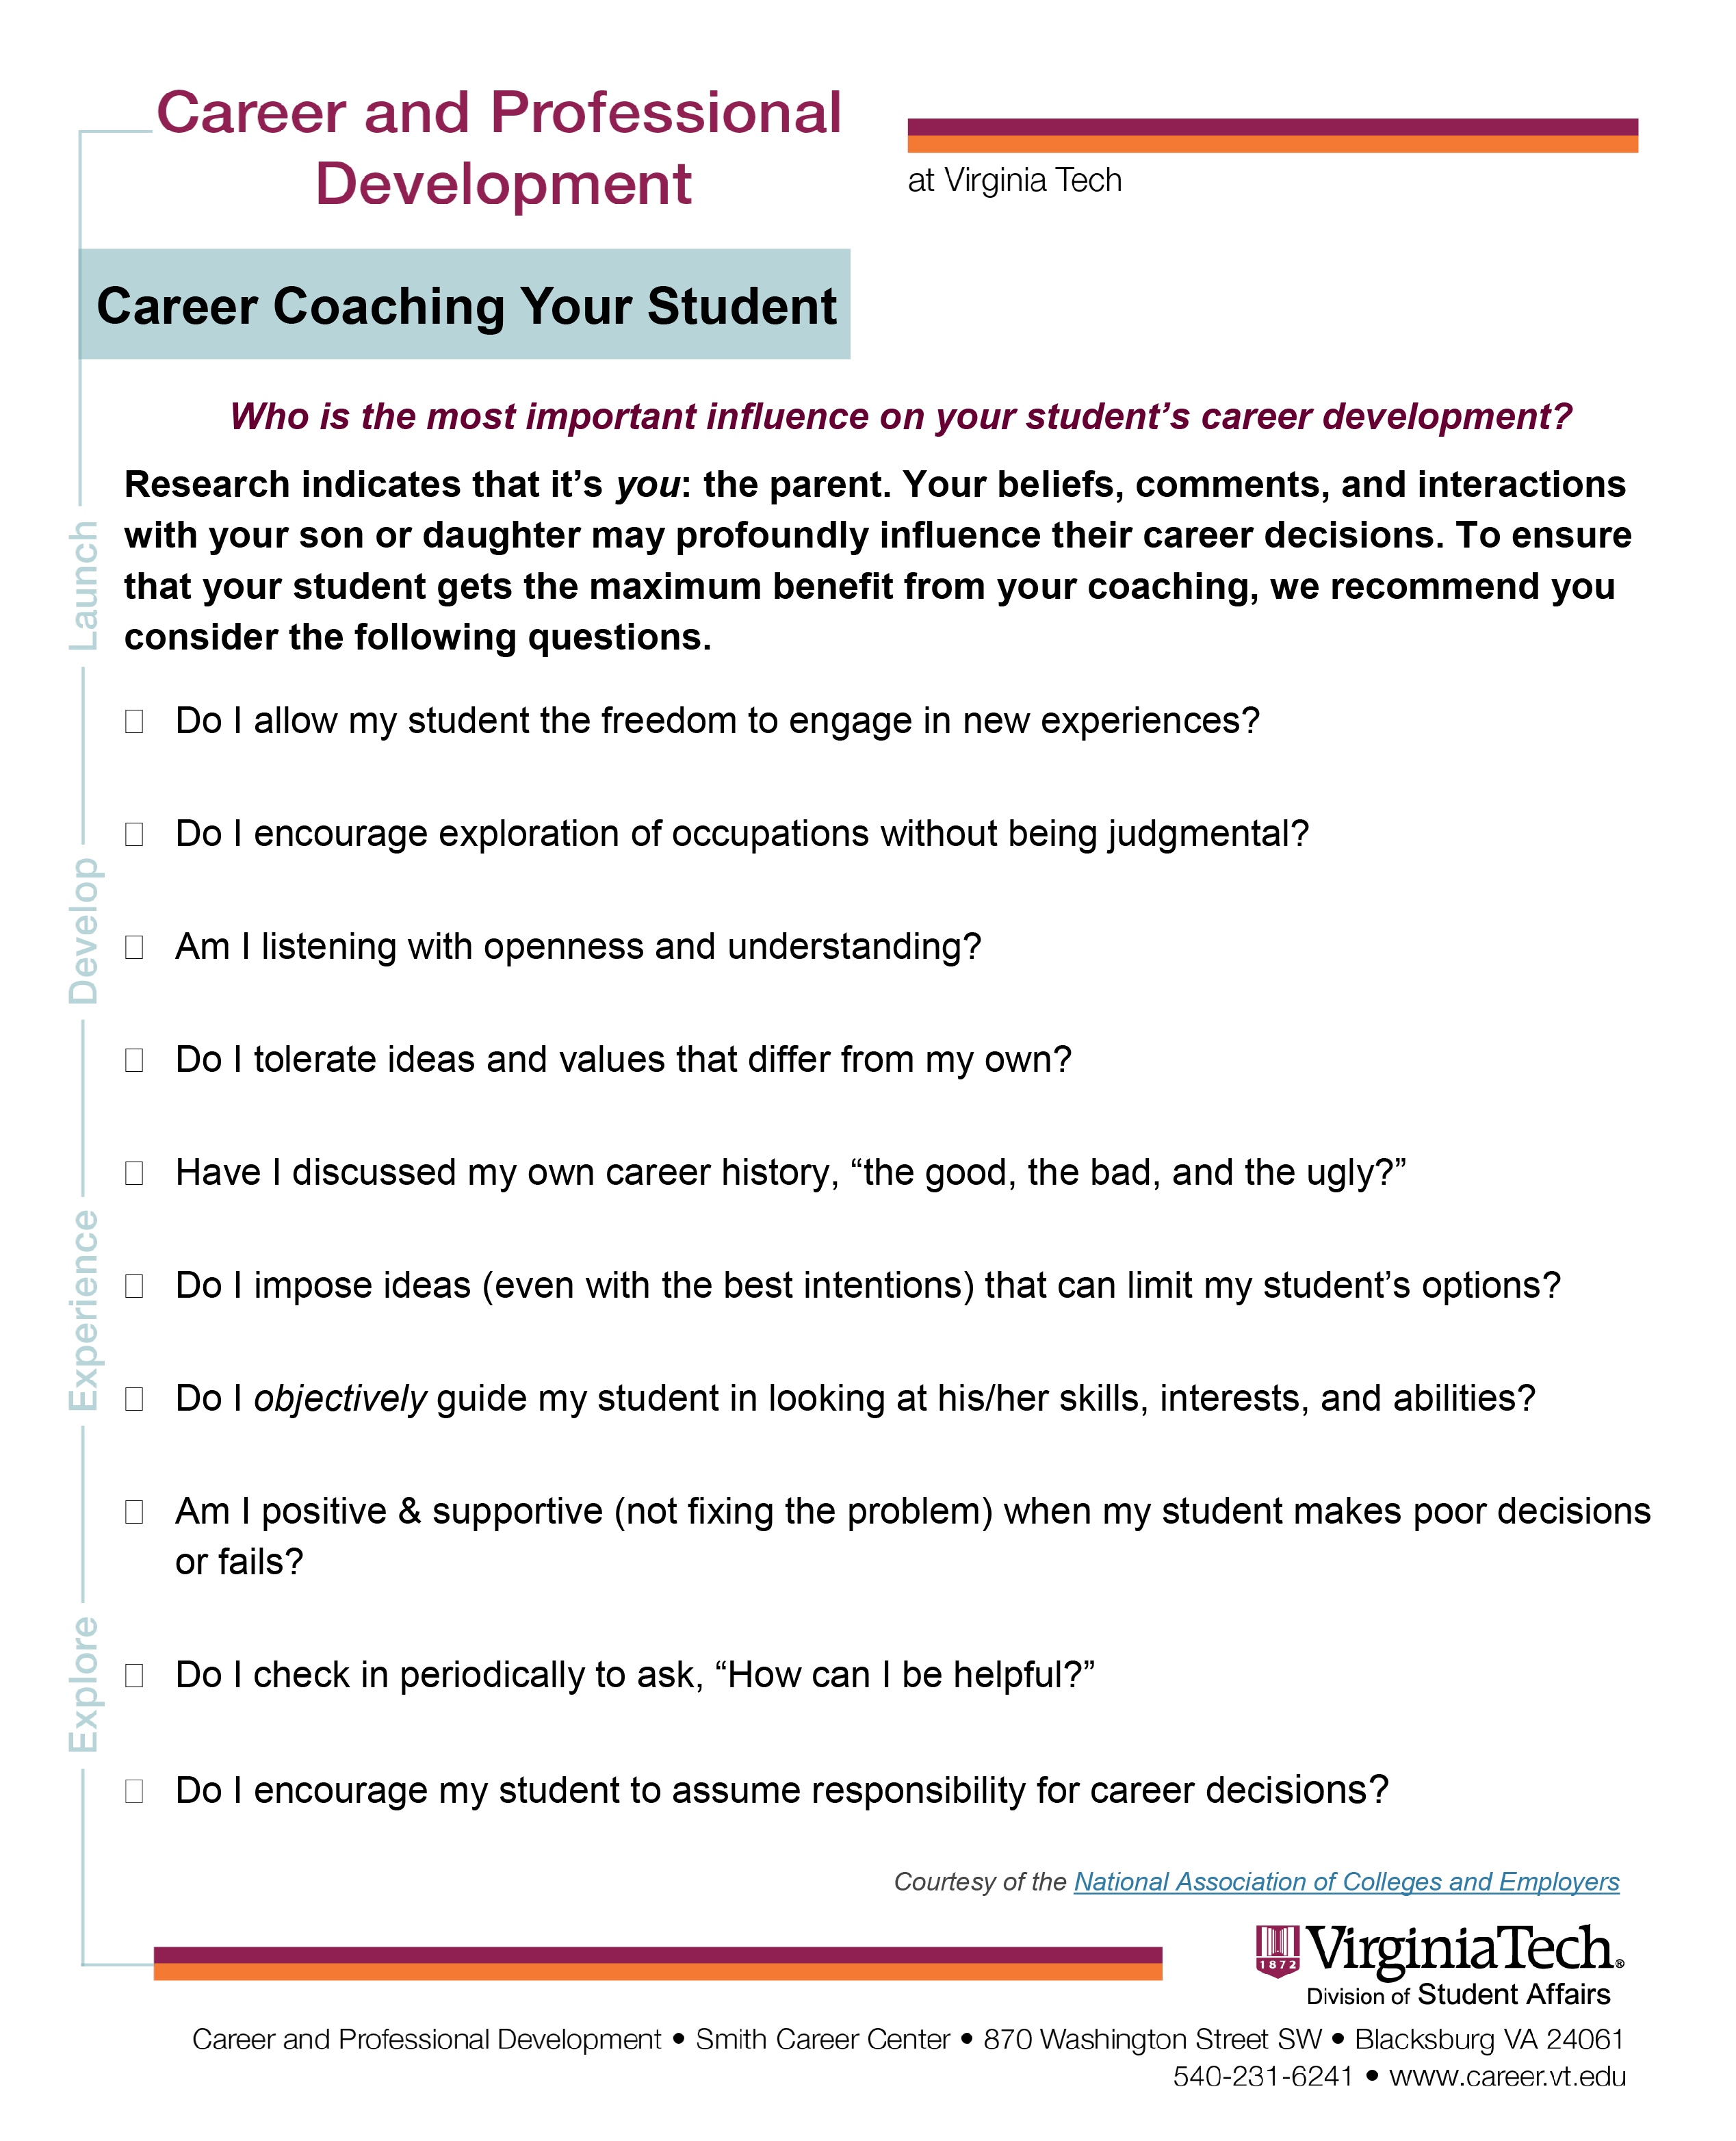 Career coaching your student